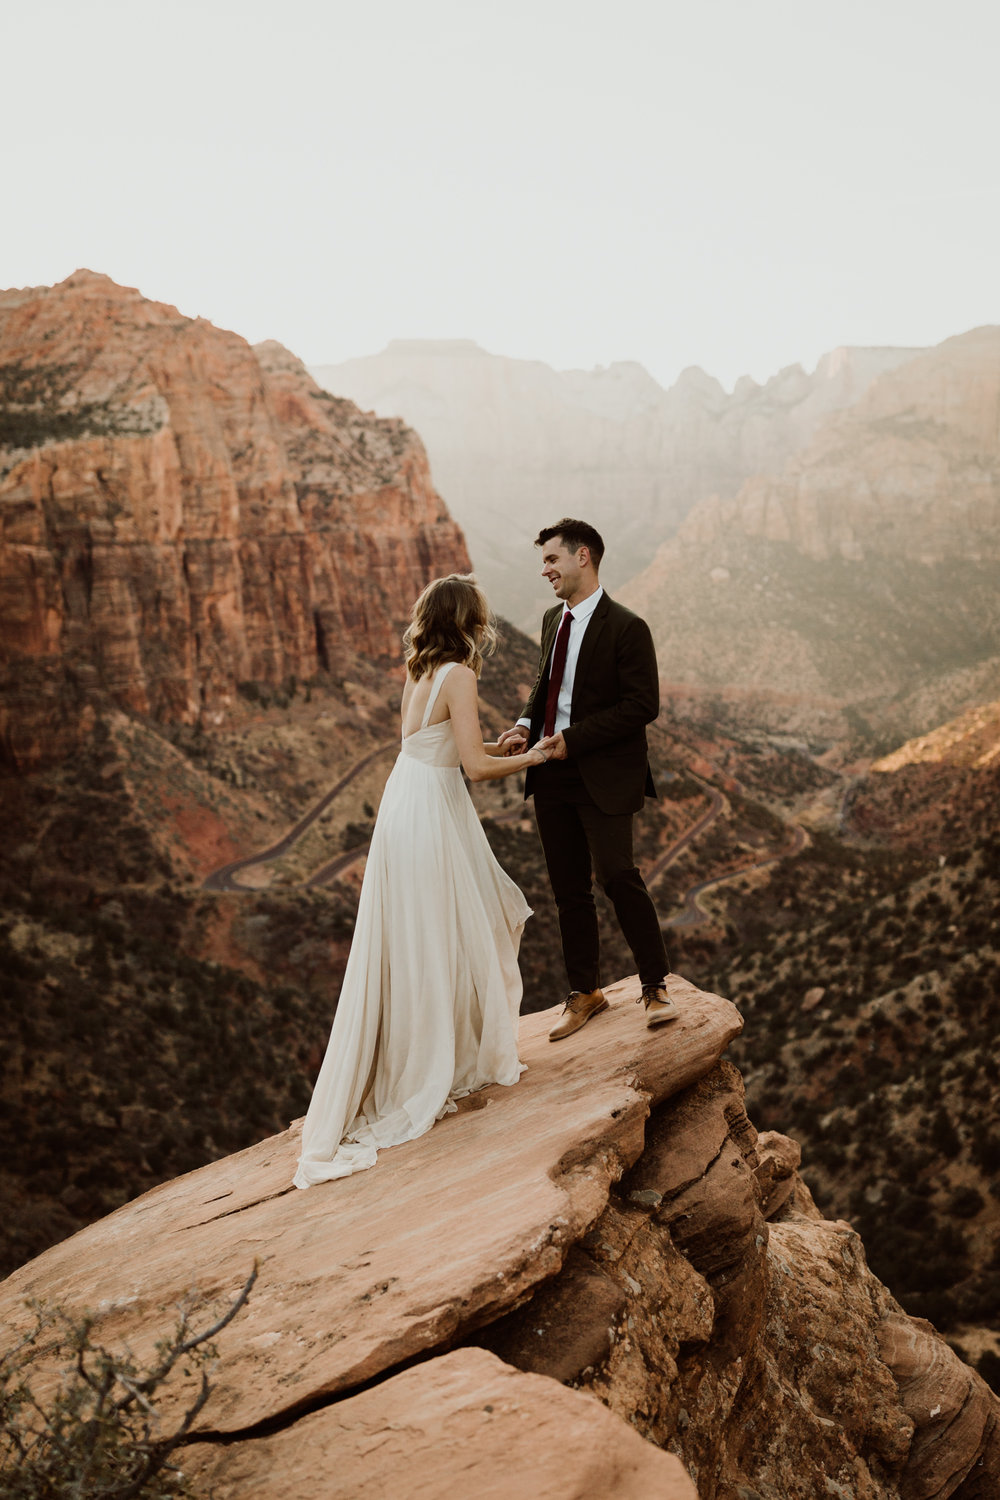 zion-national-park-wedding-113.jpg